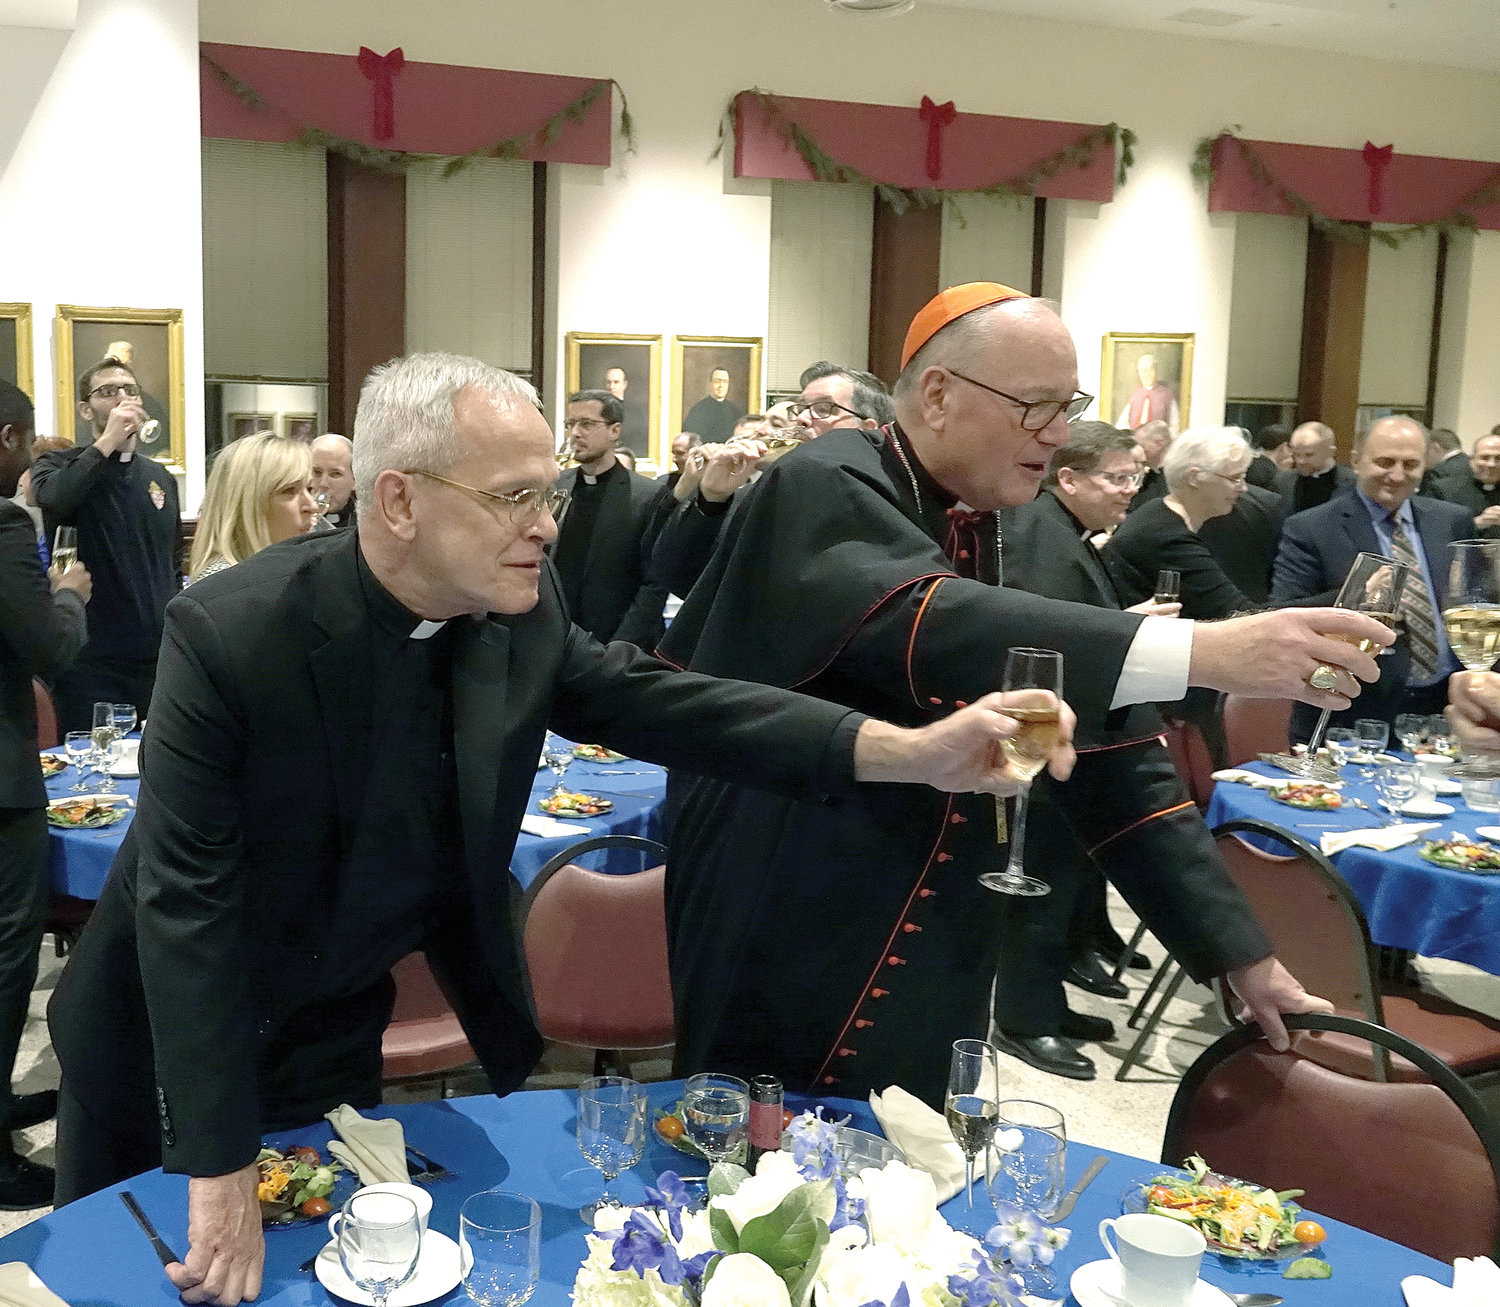 Msgr. Peter Vaccari, rector of St. Joseph's Seminary in Dunwoodie, and Cardinal Dolan extend their glasses during a toast at a farewell gathering for Msgr. Vaccari Dec. 18 at the seminary.